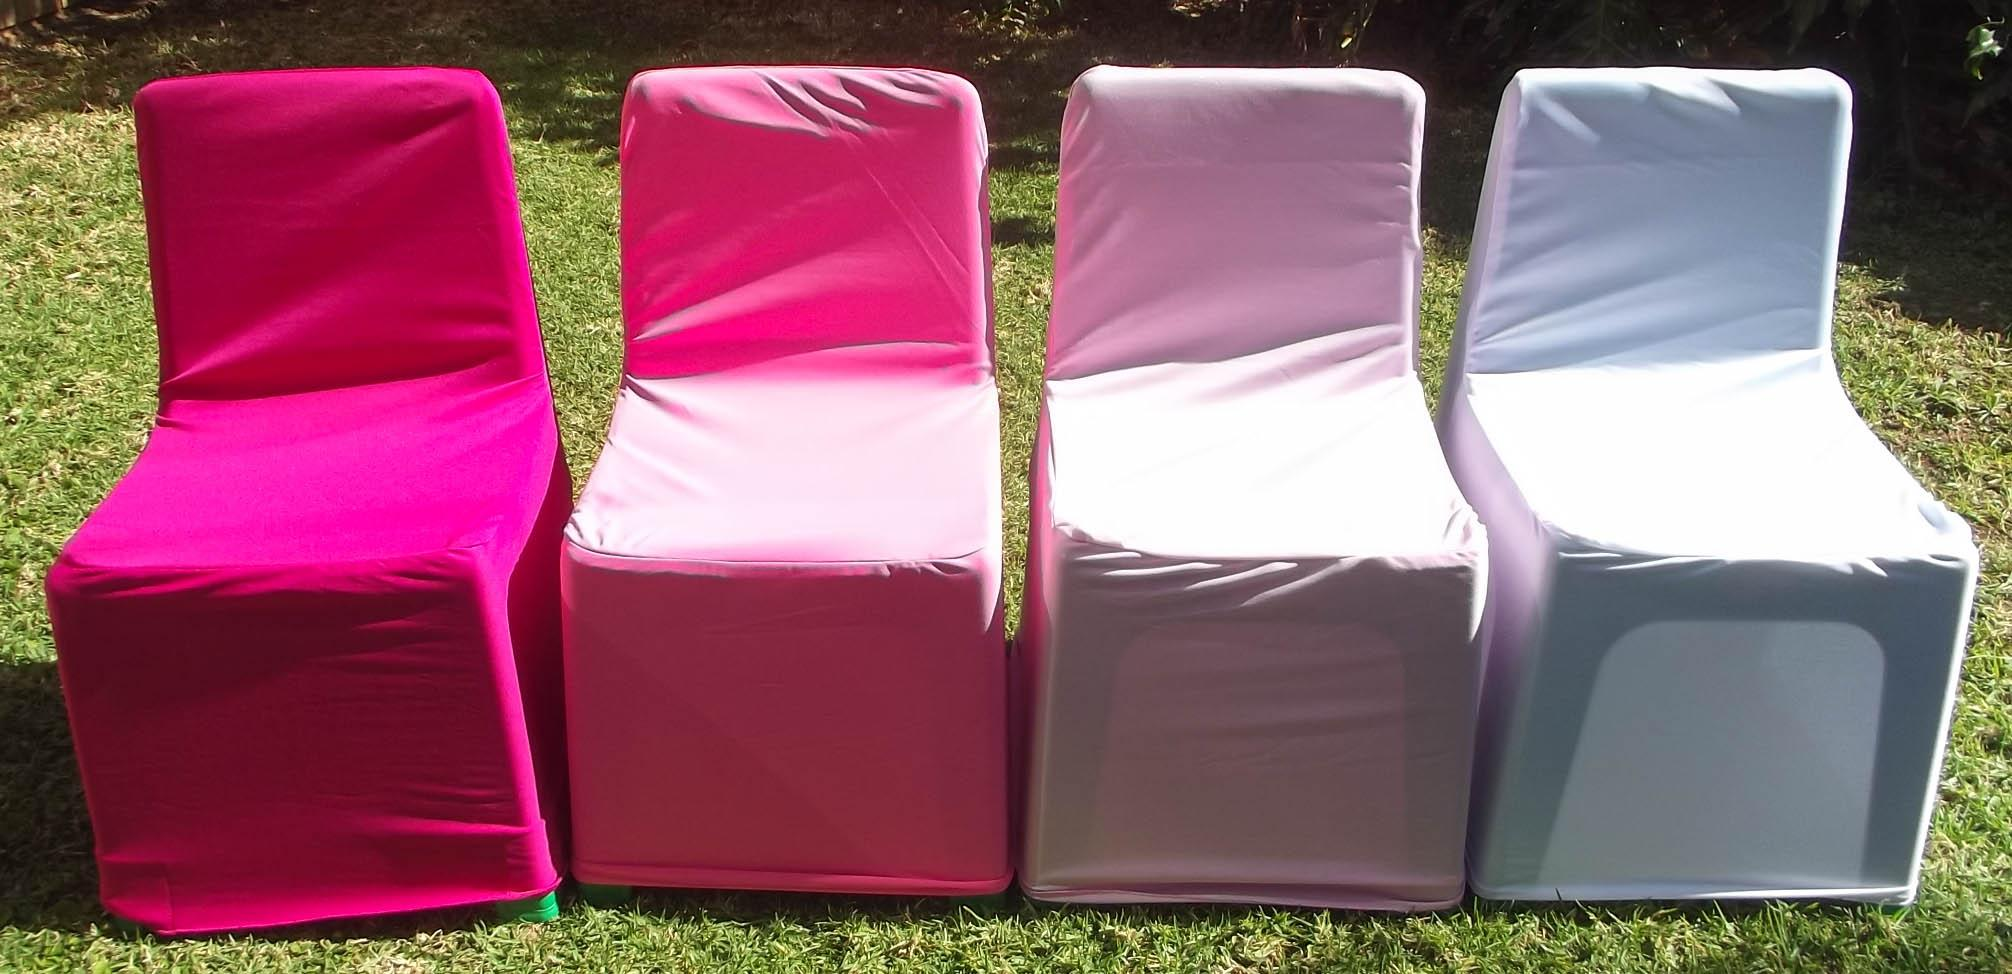 discount chair covers for sale galvanized steel chairs kids 50 pack r1400 incl postage - johannesburg ad | free ads 80,000+ local